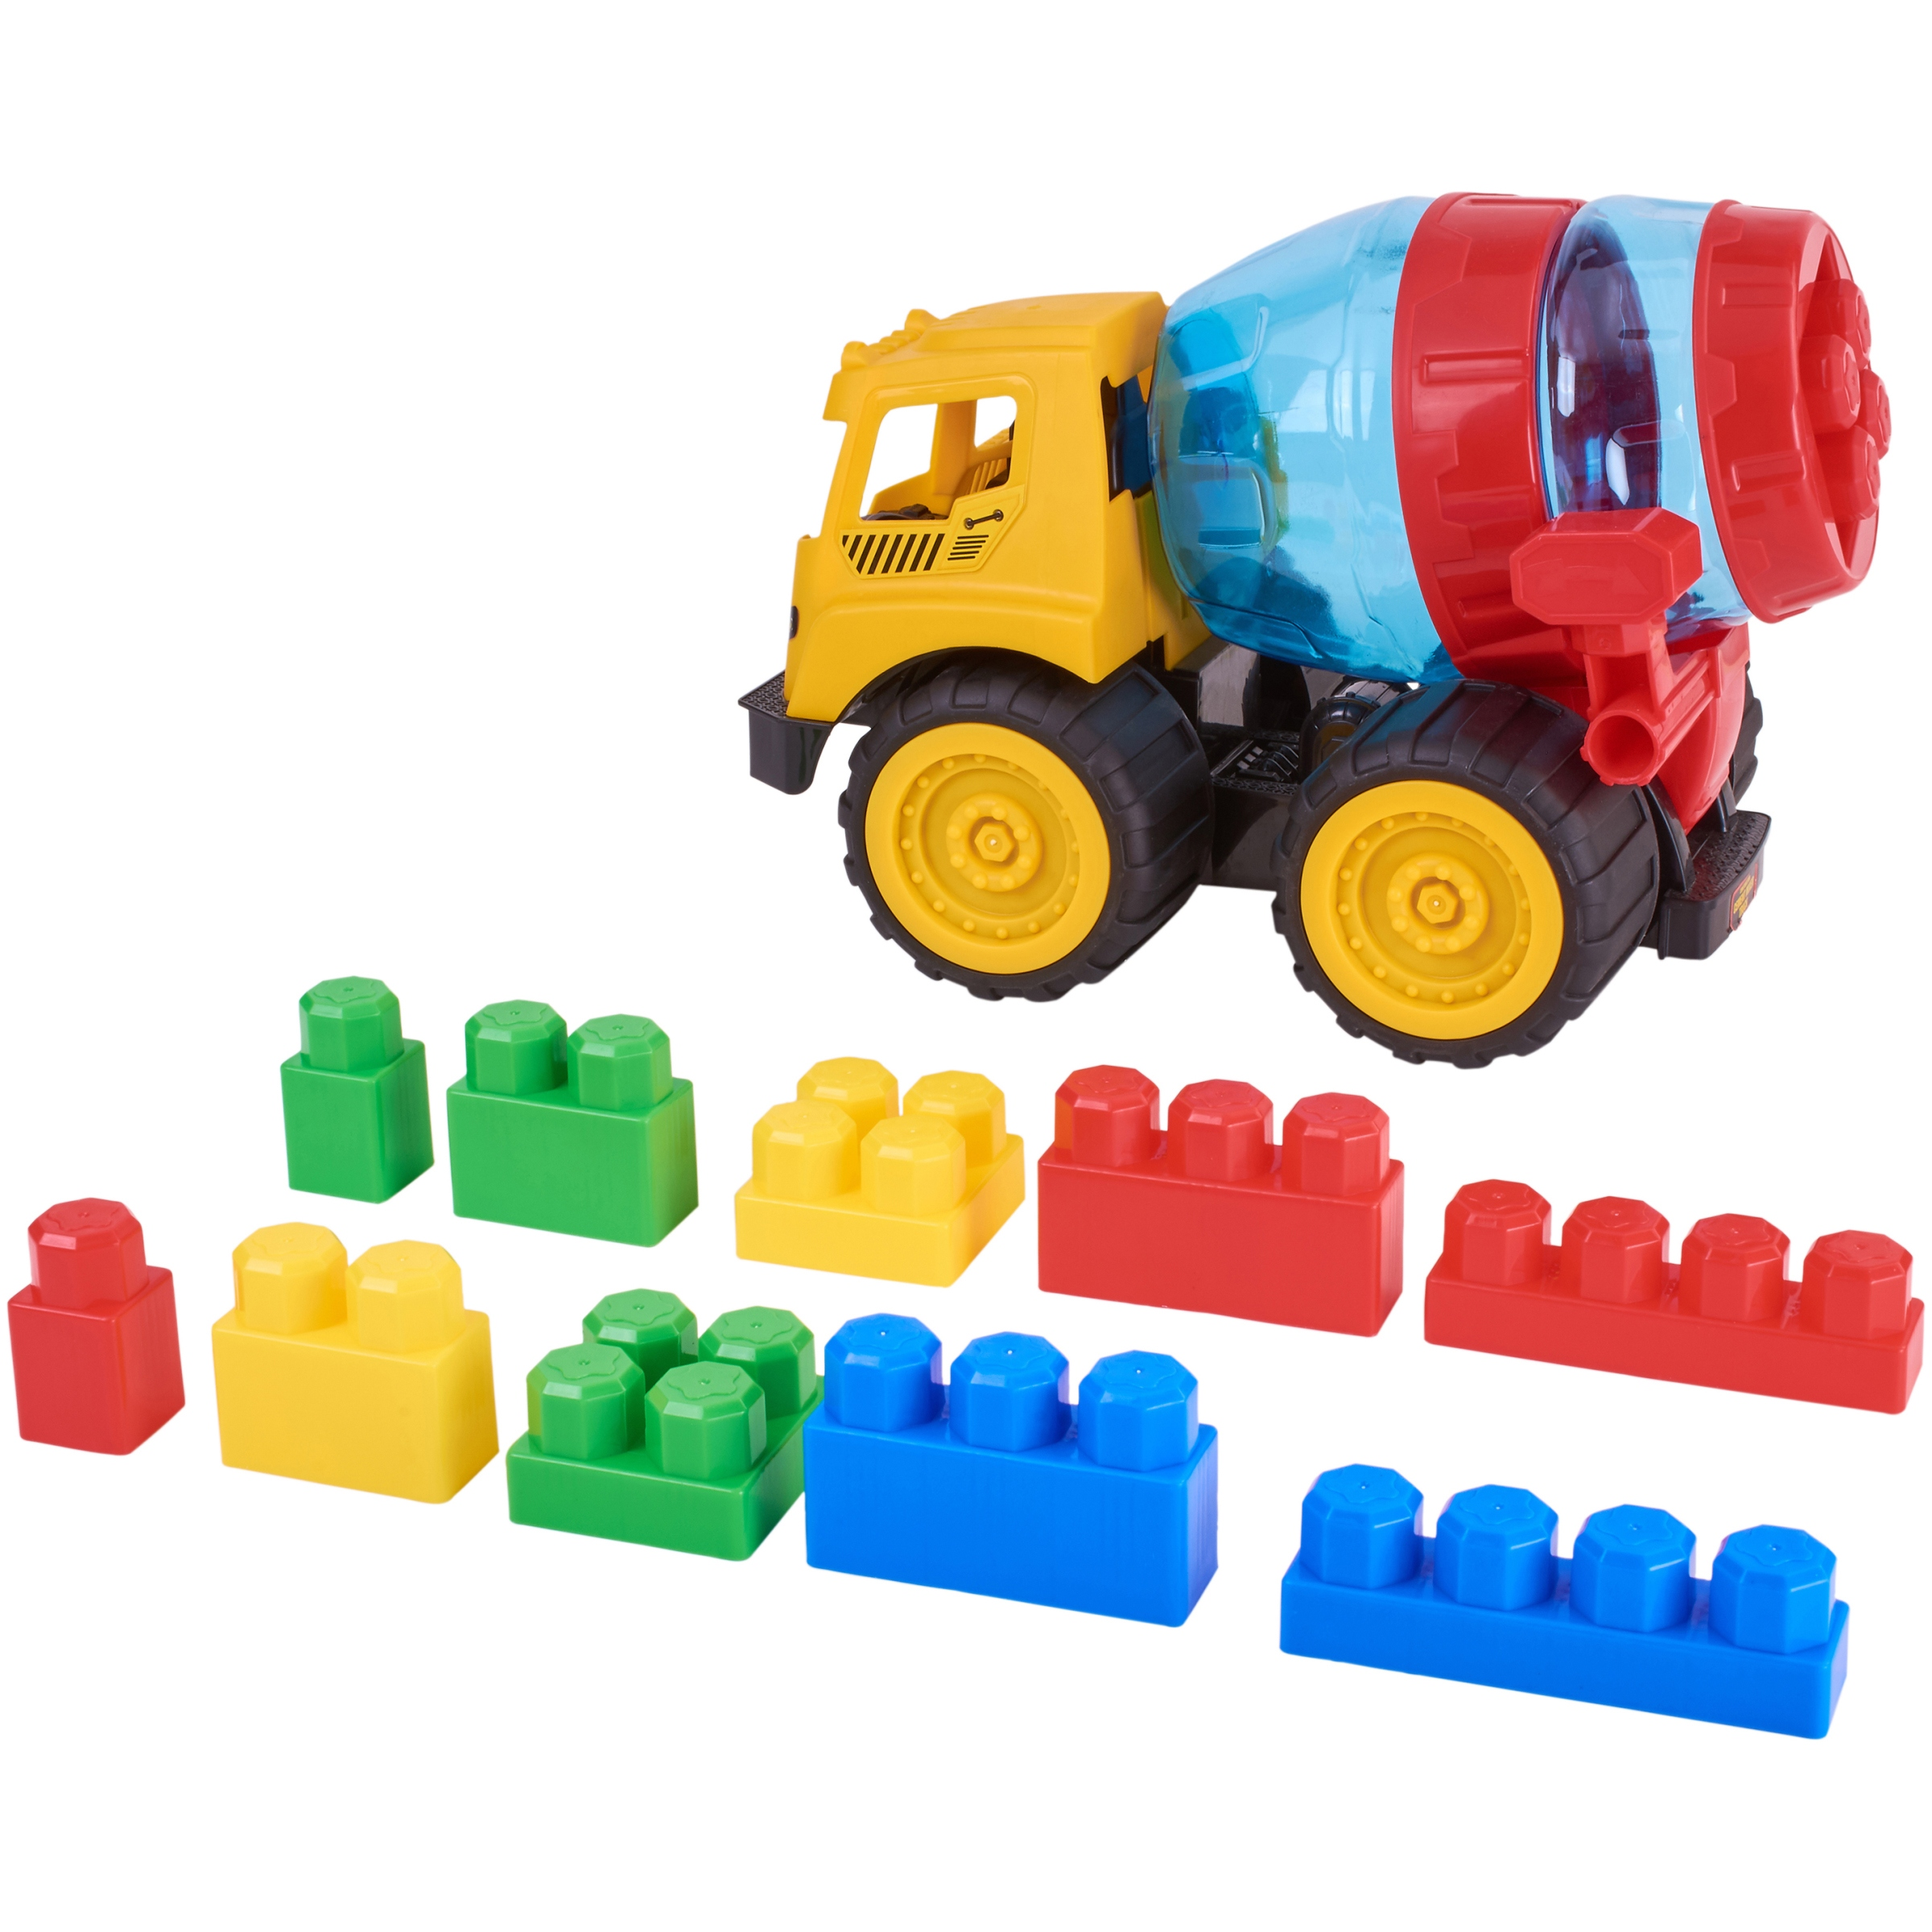 Kid Connection 11-Piece Construction Truck and Blocks Set